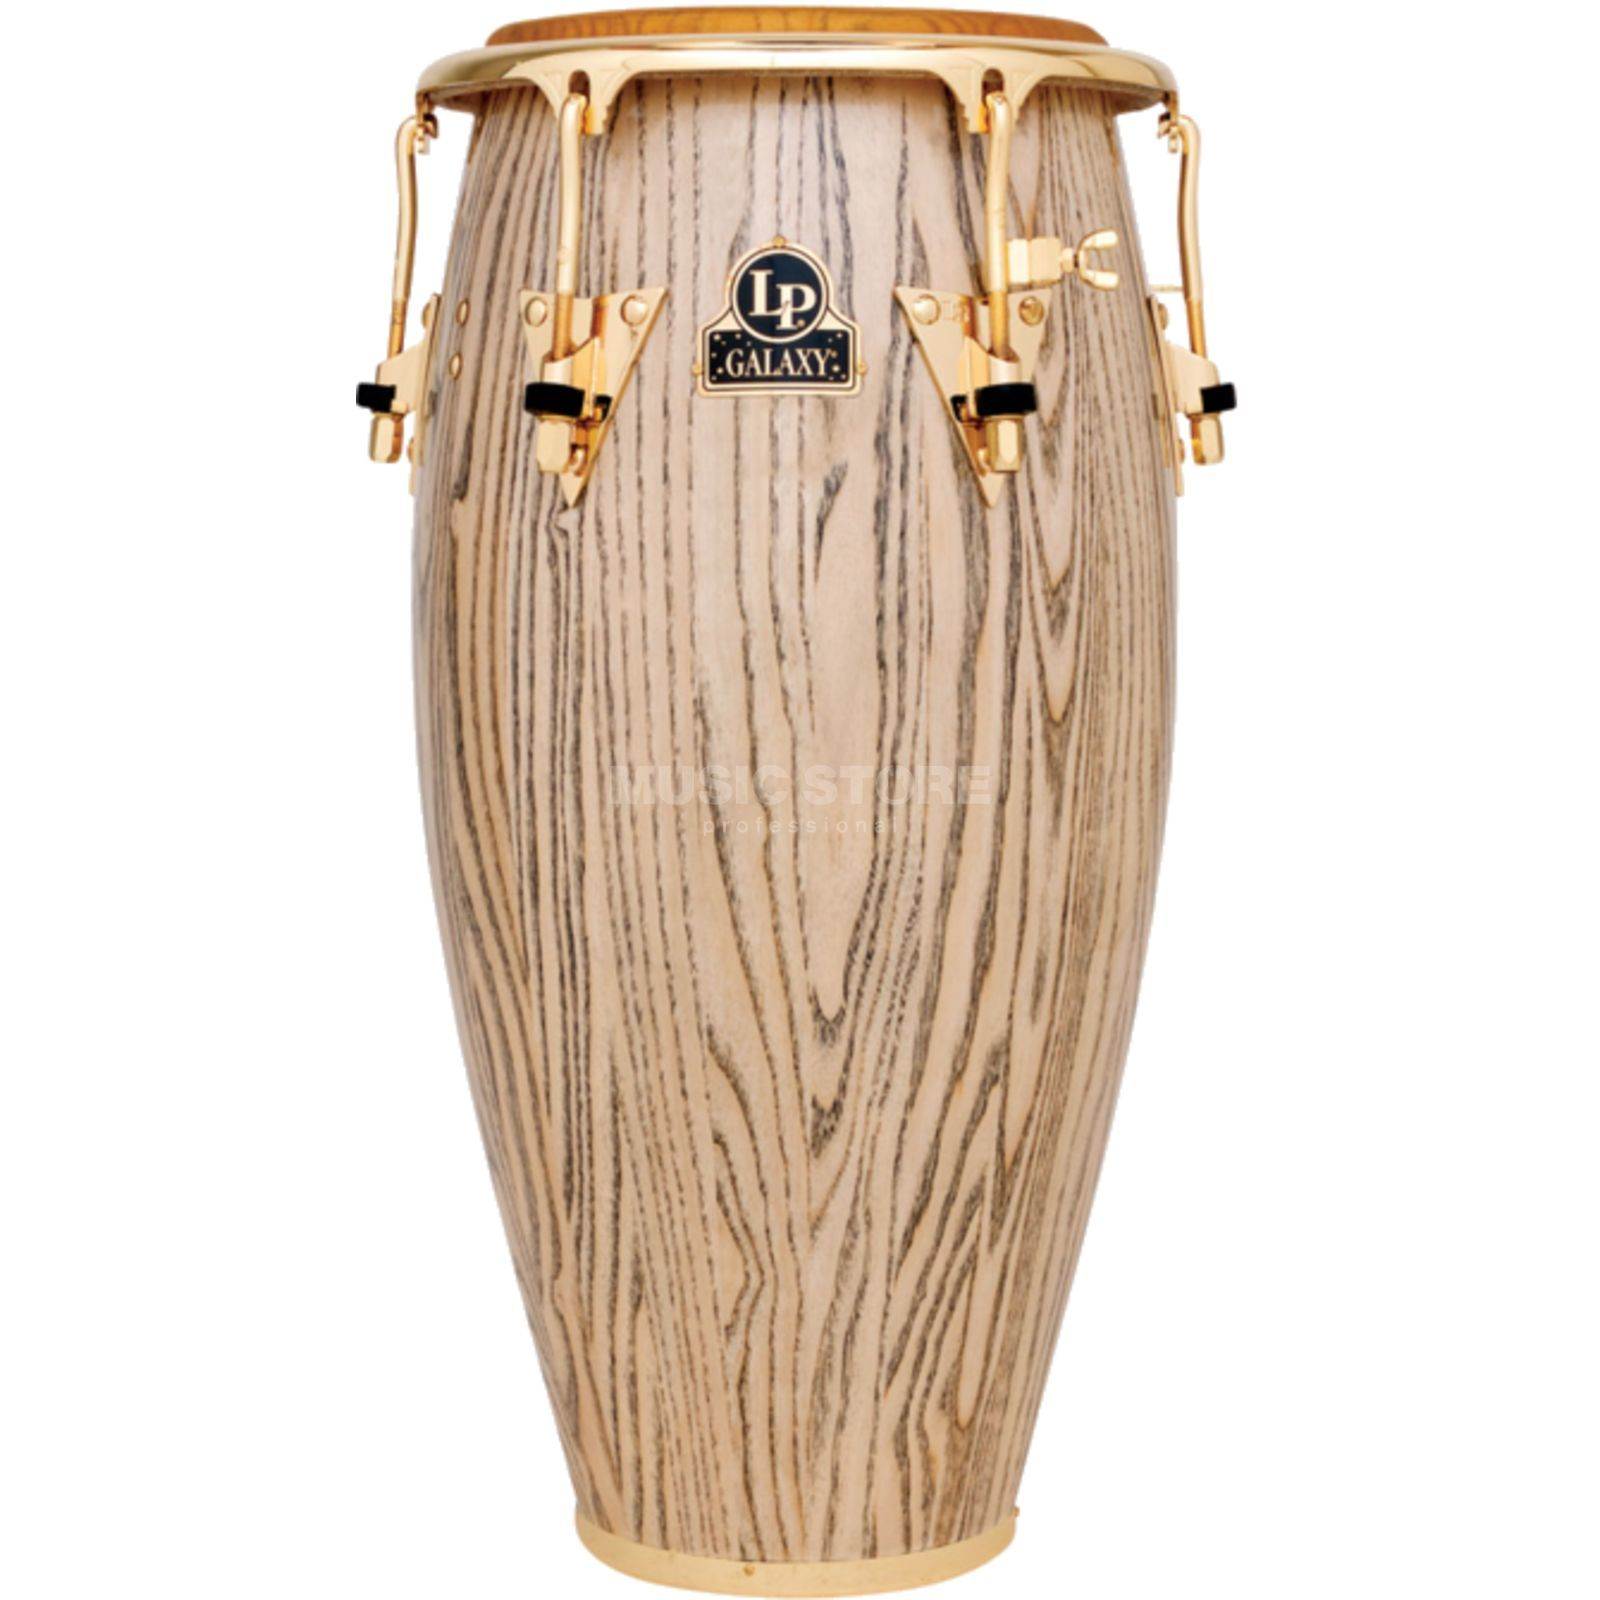 "Latin Percussion Galaxy Conga LP805Z-AW 11"" Quinto, Natural, Giovanni Produktbild"